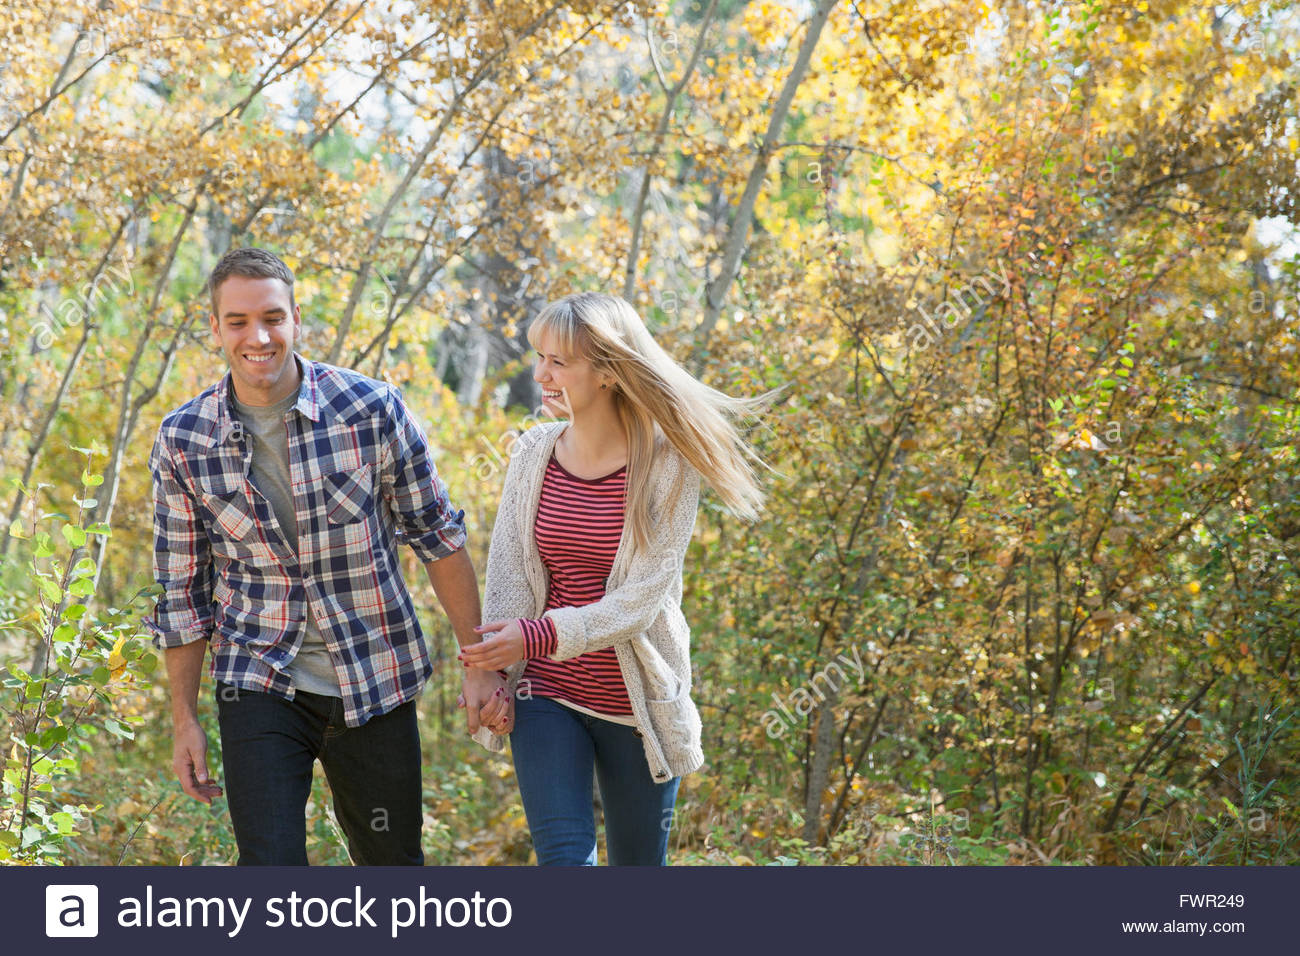 Happy young couple walking in park Photo Stock